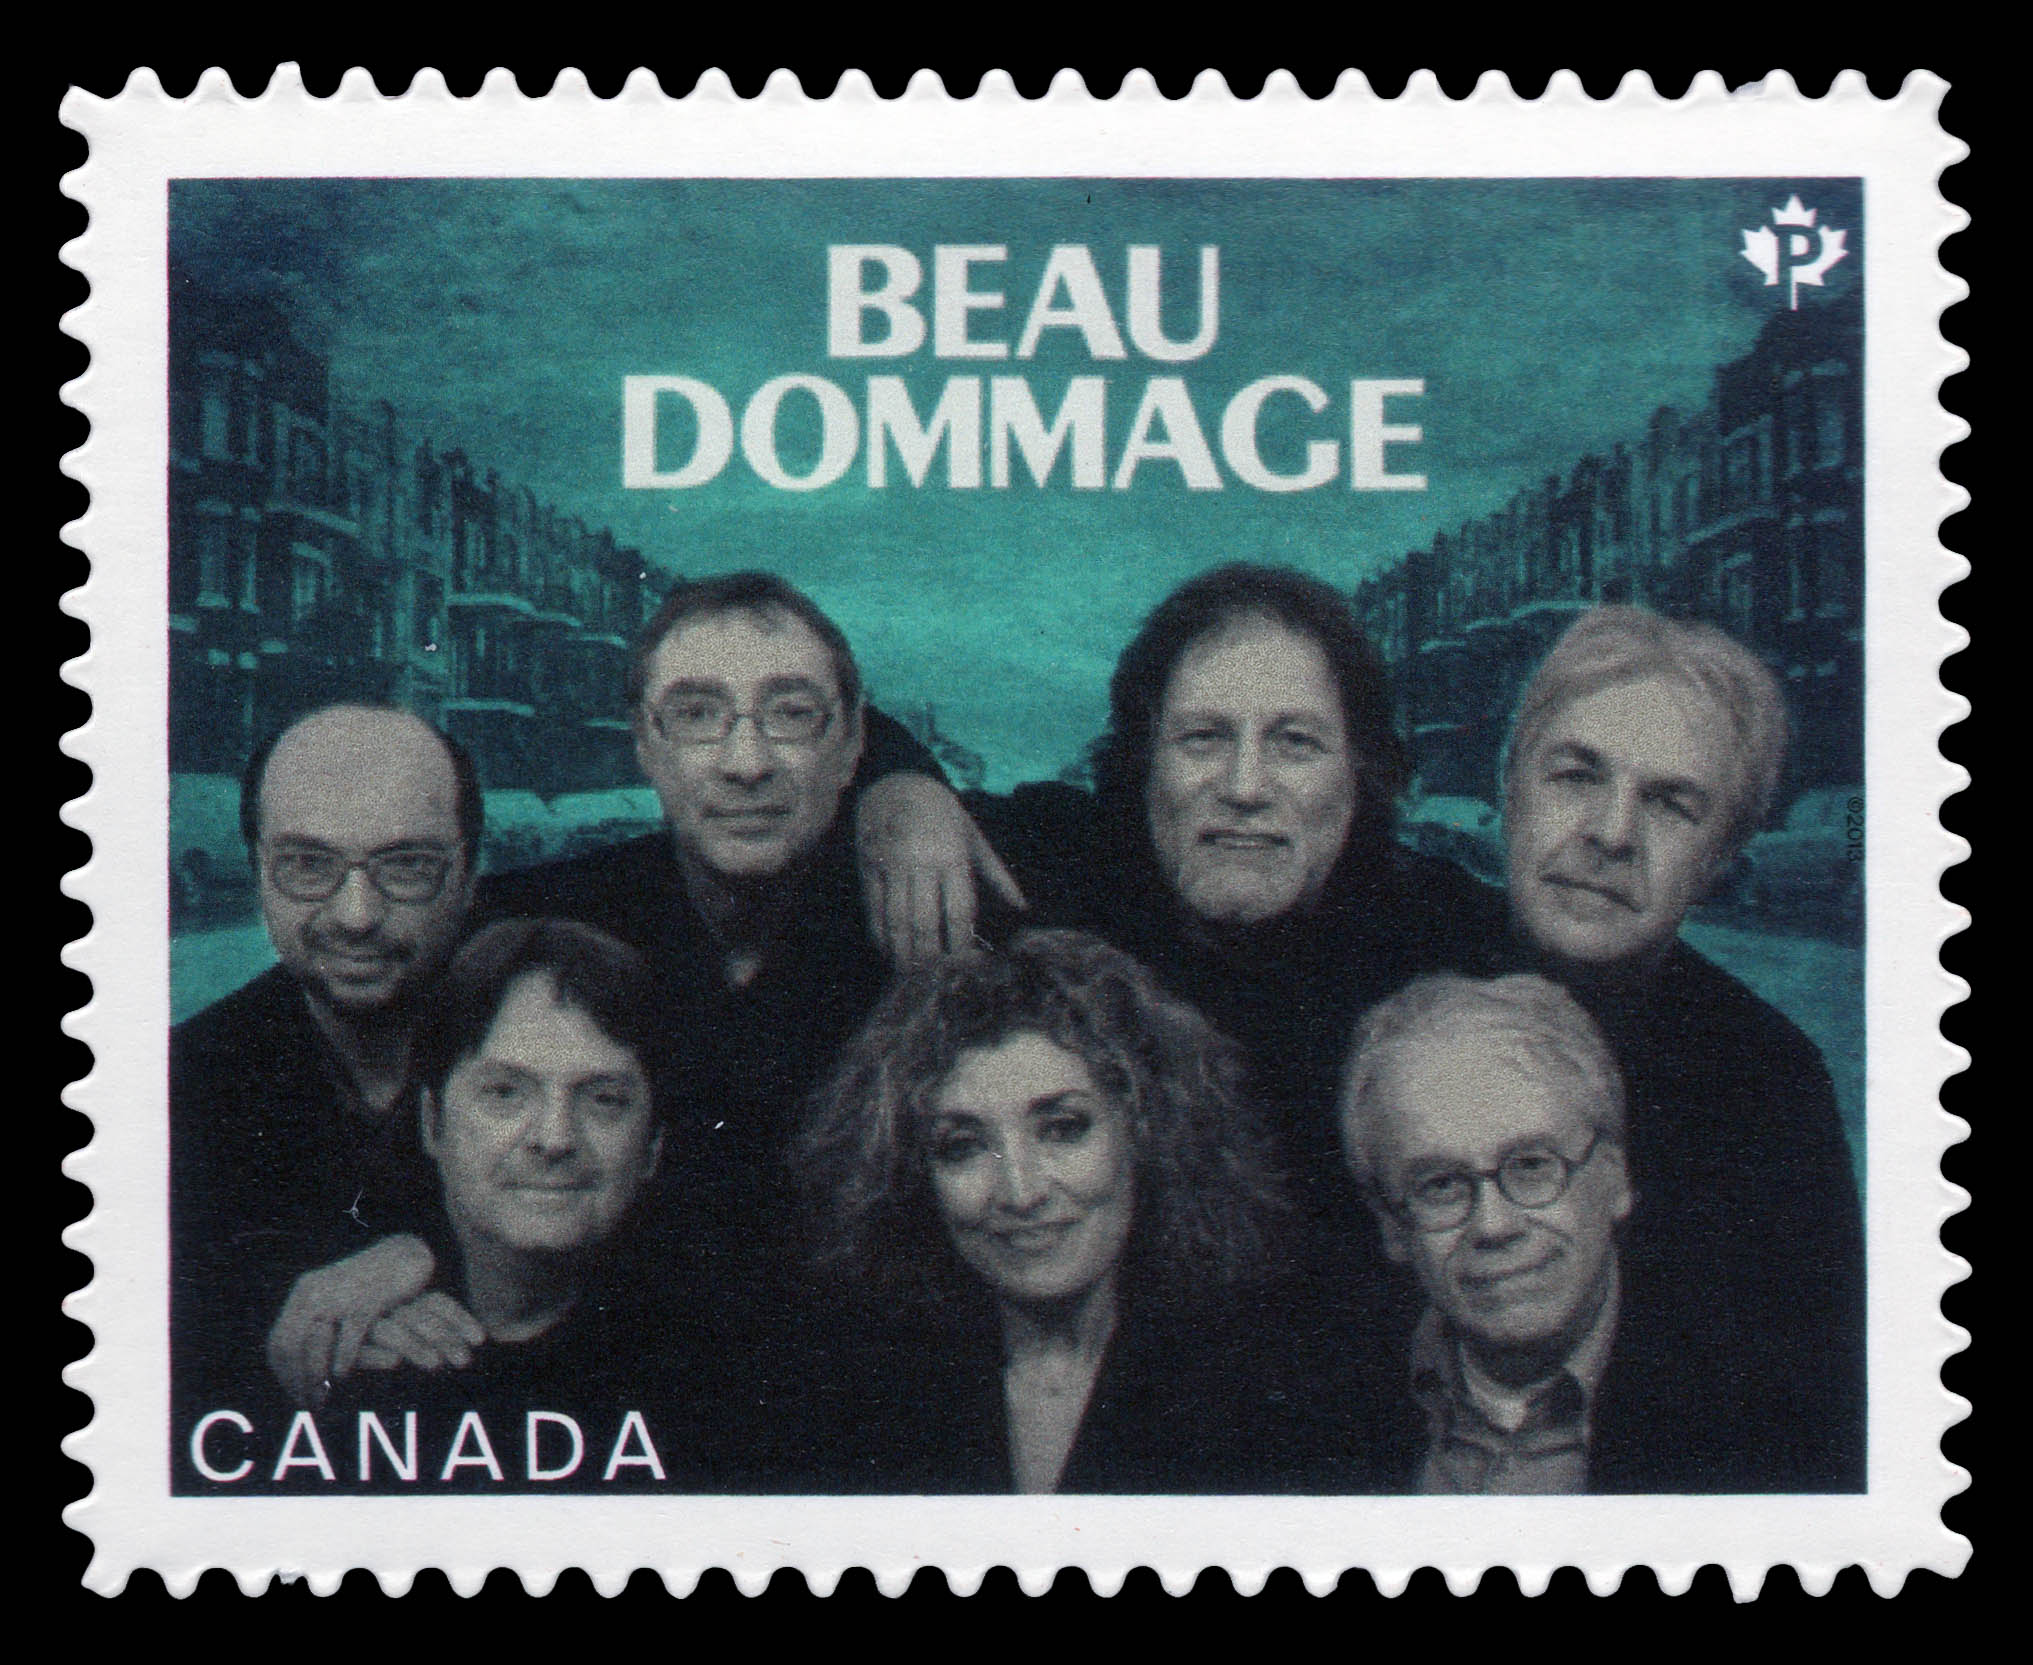 Beau Dommage Canada Postage Stamp | Canadian Recording Artists